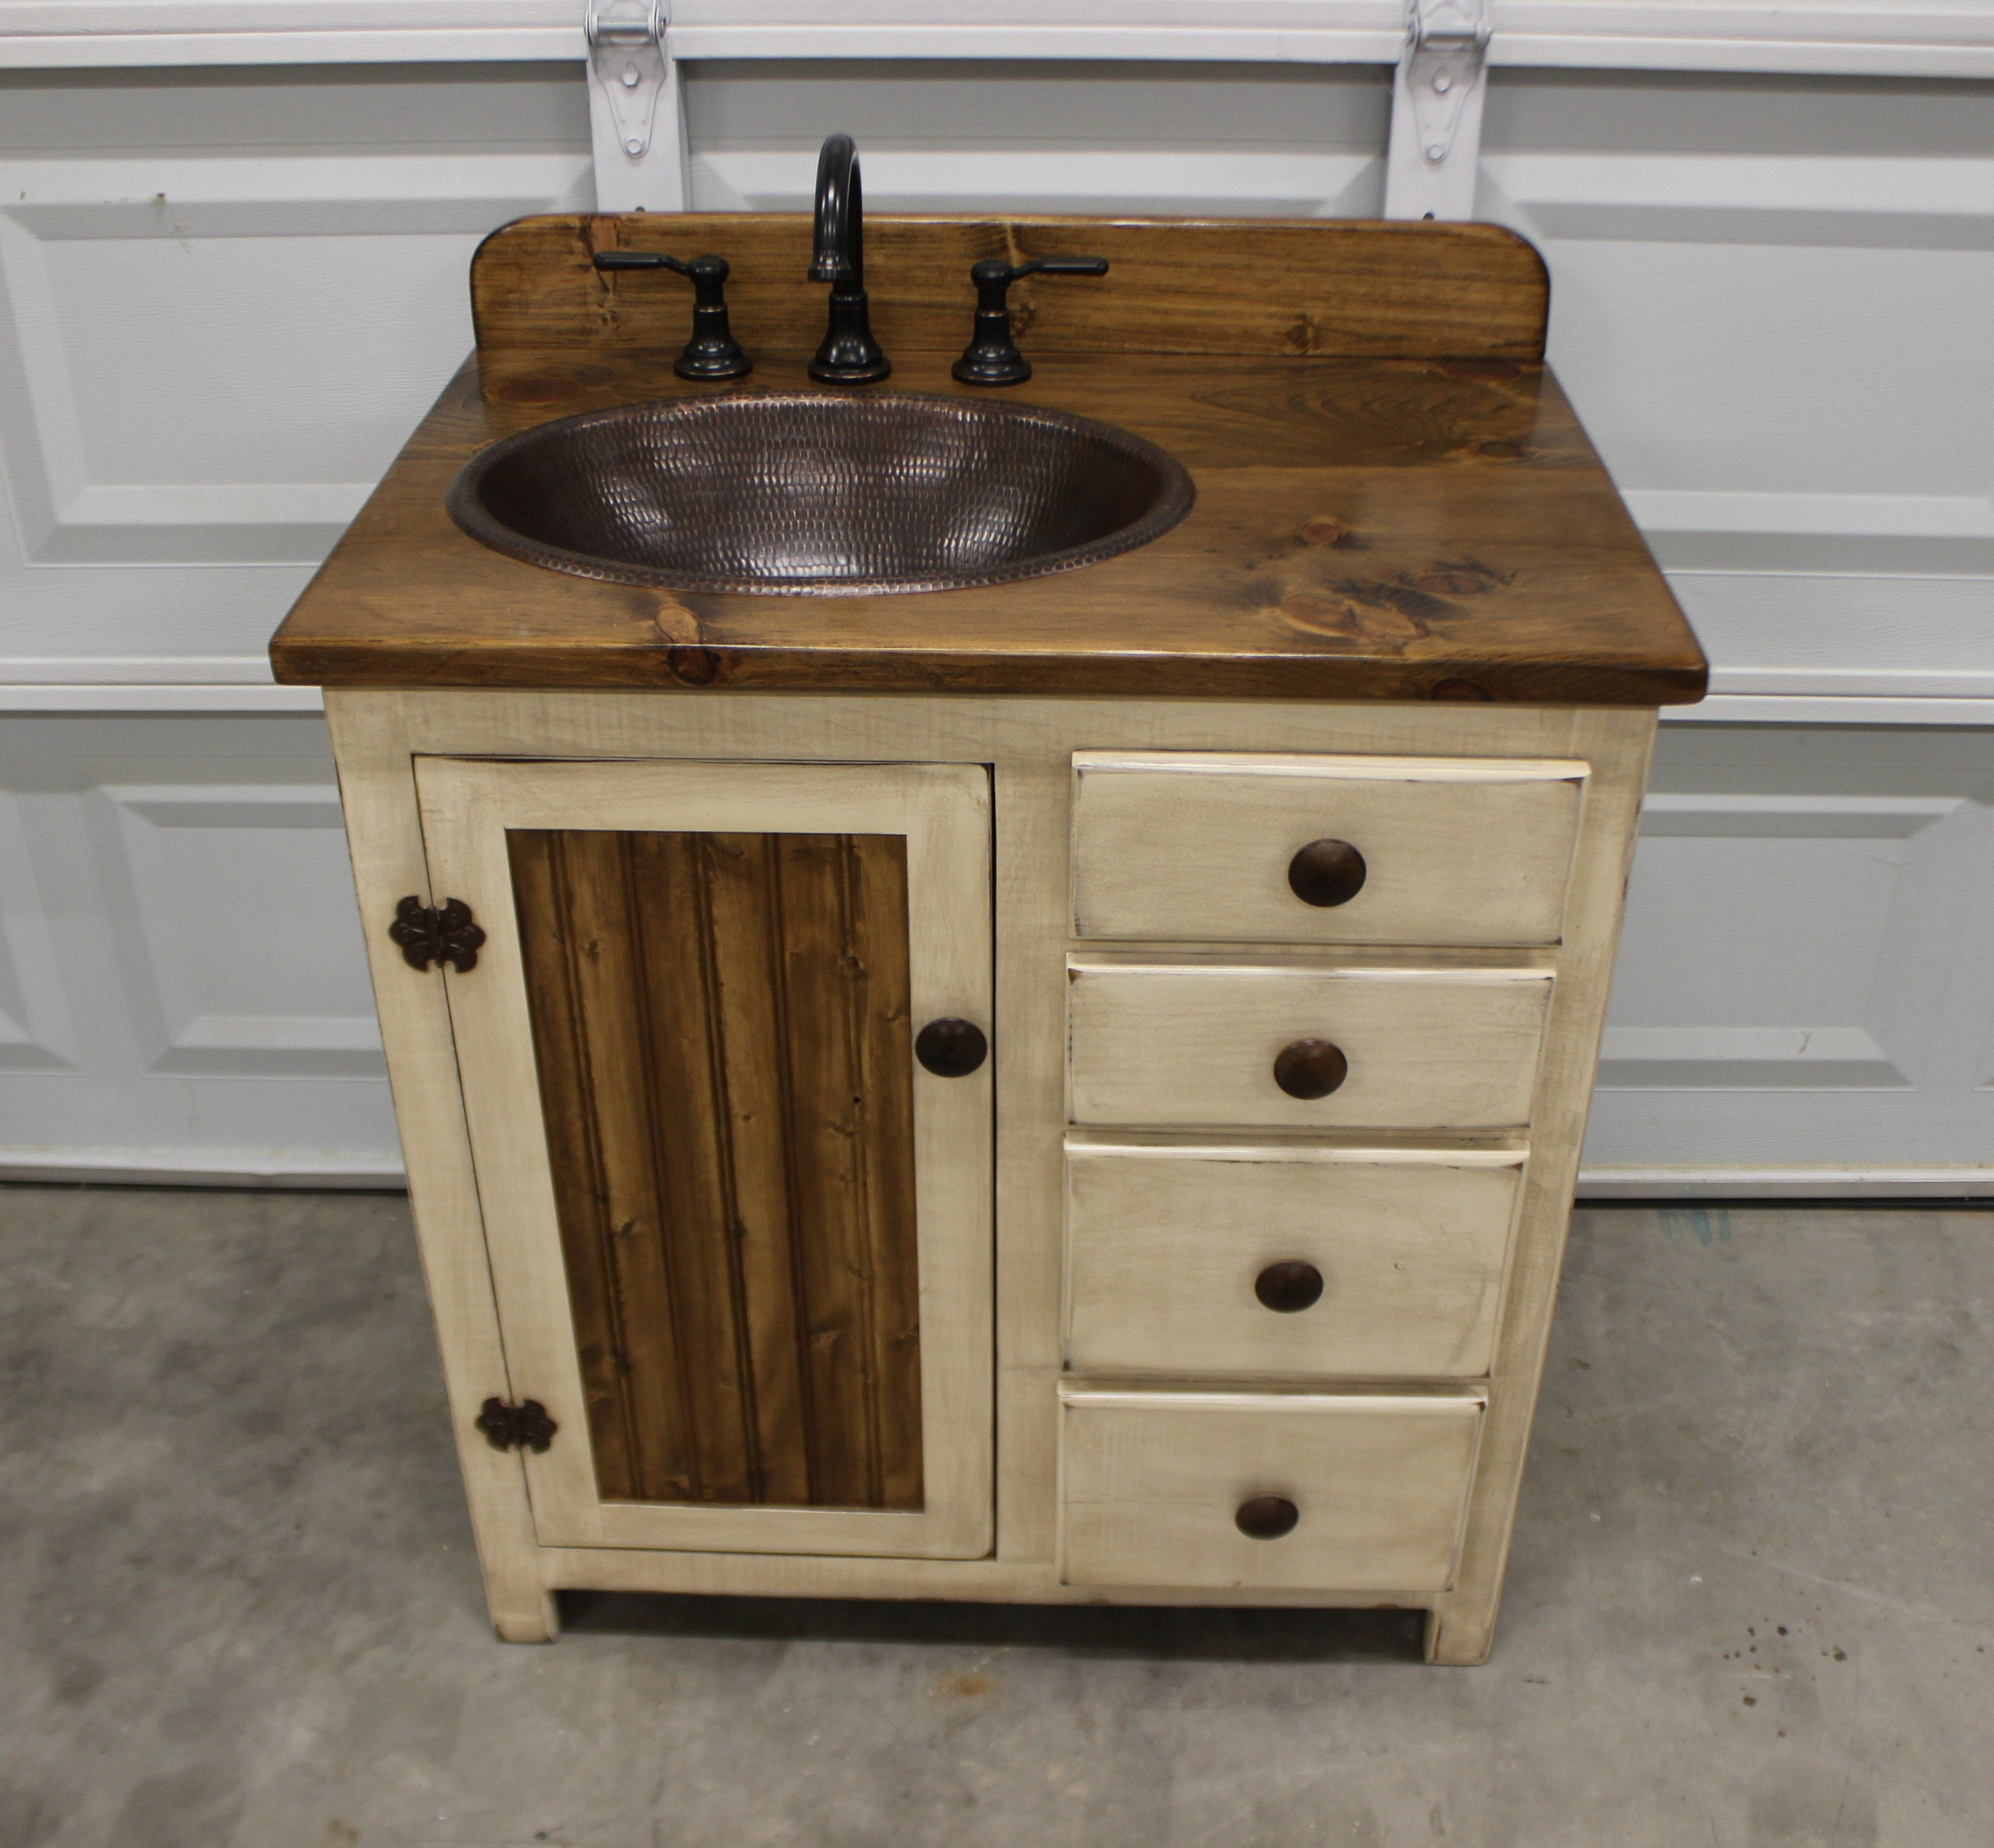 Rustic farmhouse vanity 32 copper sink antique white - Bathroom vanity with farmhouse sink ...